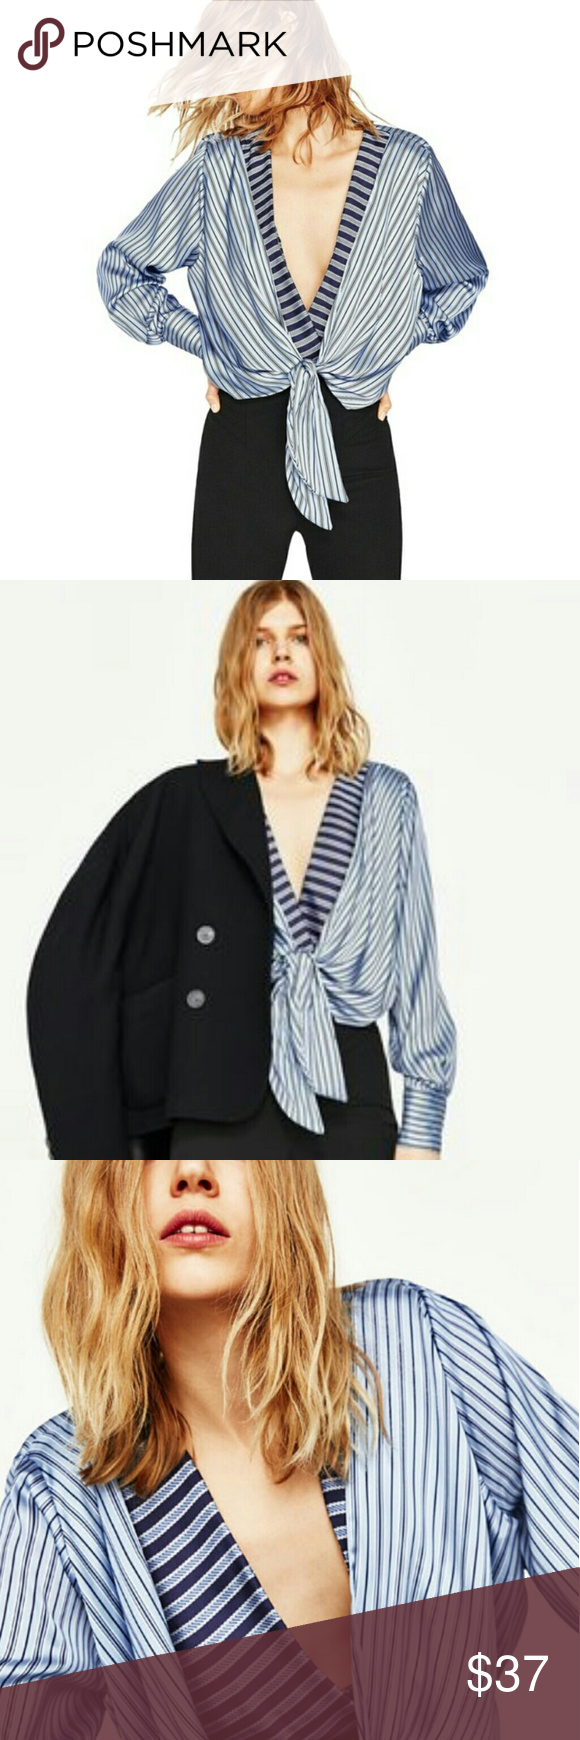 5d81eadb2c6c ZARA Wrap Striped Bodysuit size M This sold out from SS 17. Also sold